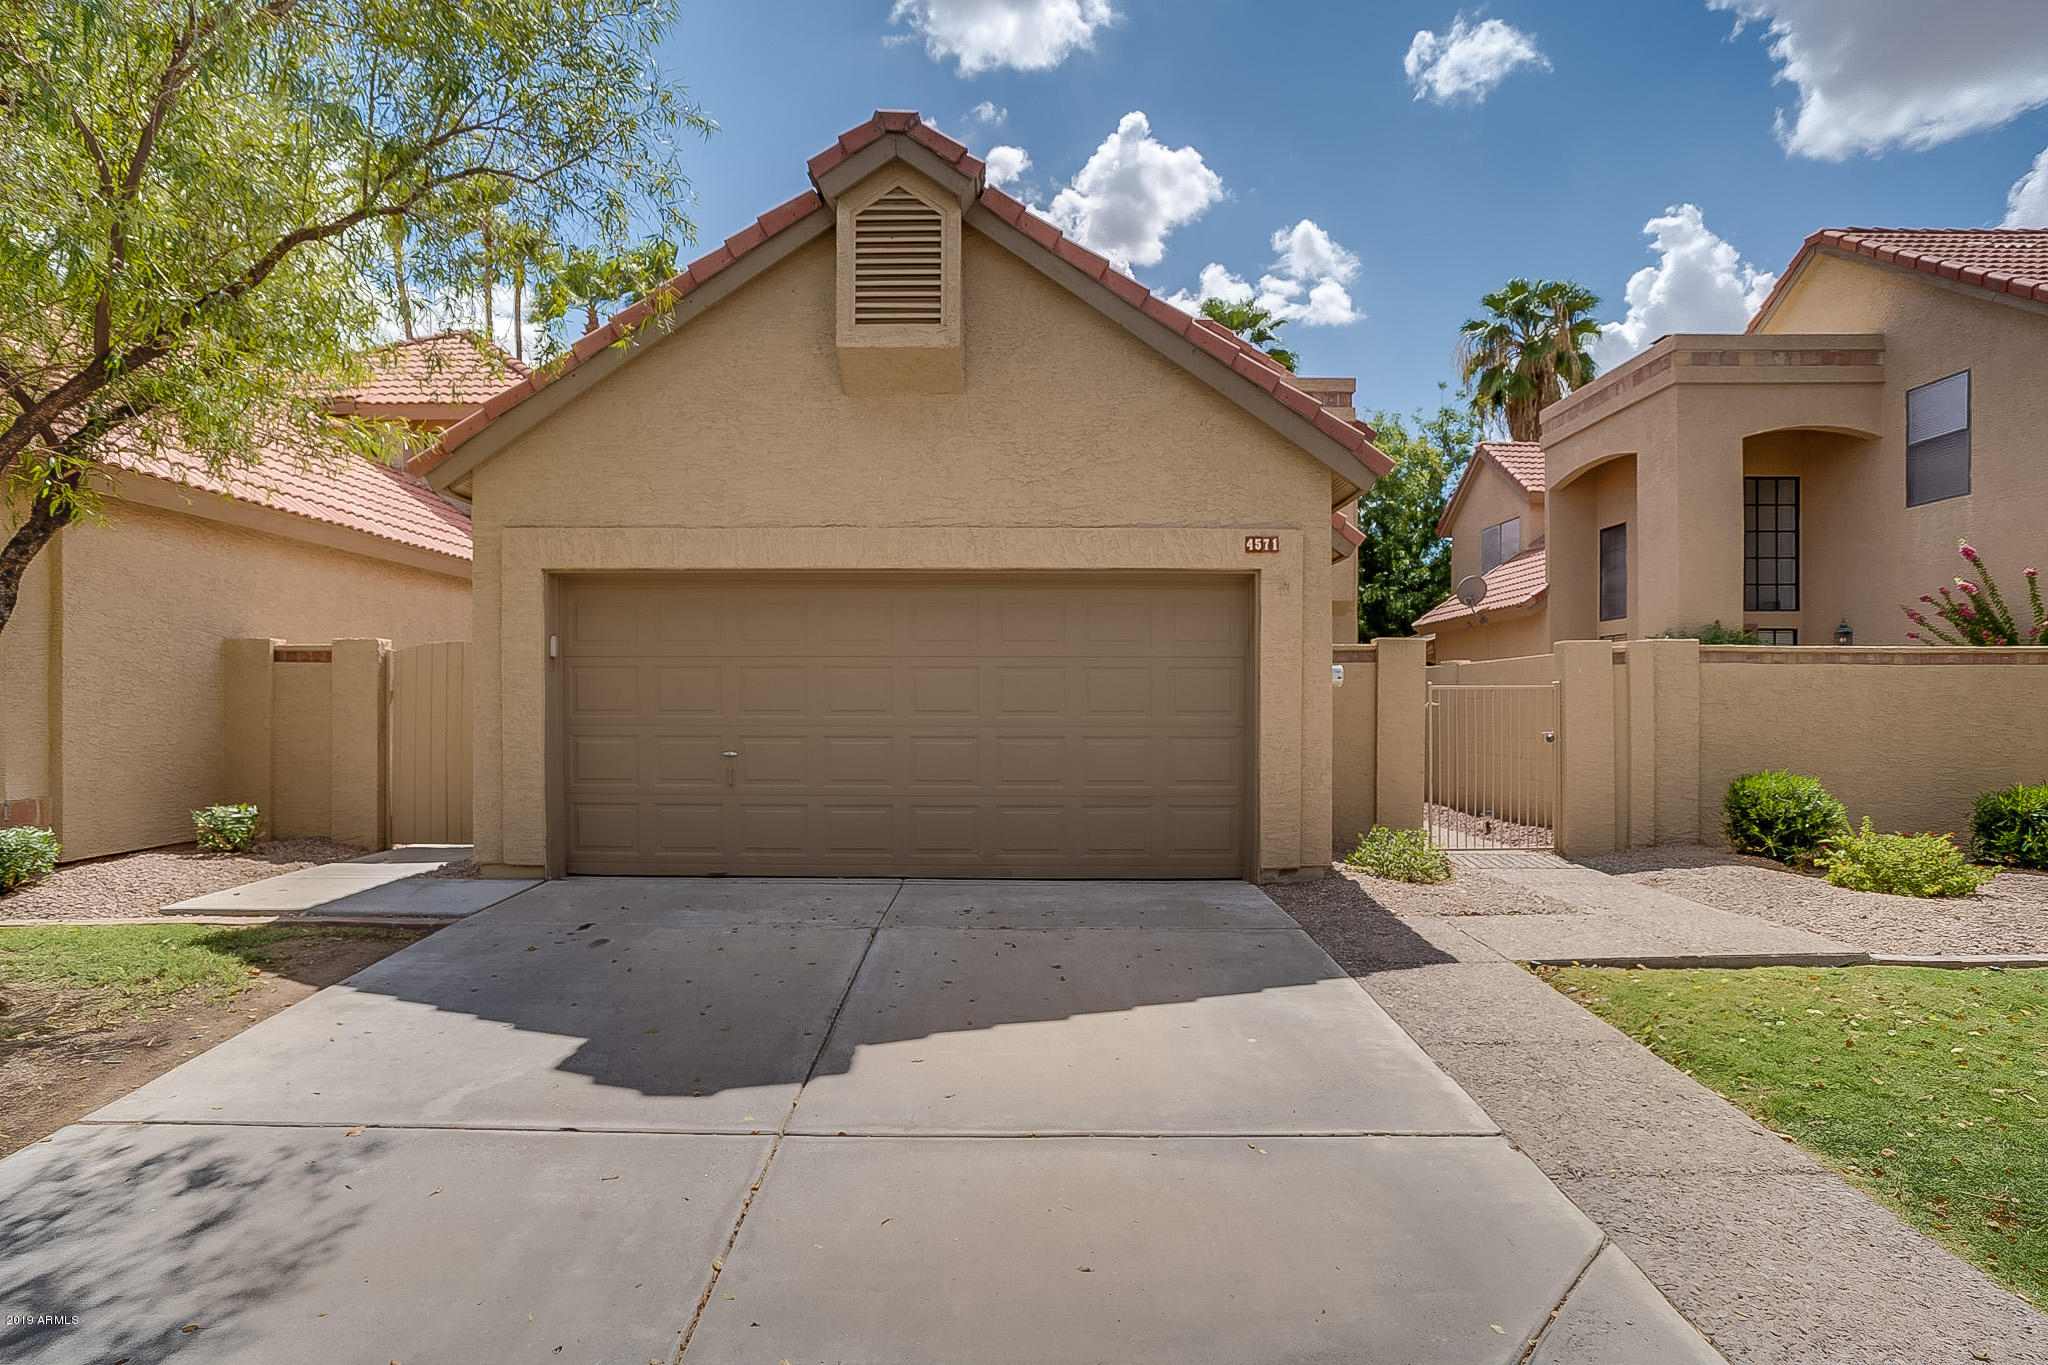 Photo of 4571 W LINDA Lane, Chandler, AZ 85226